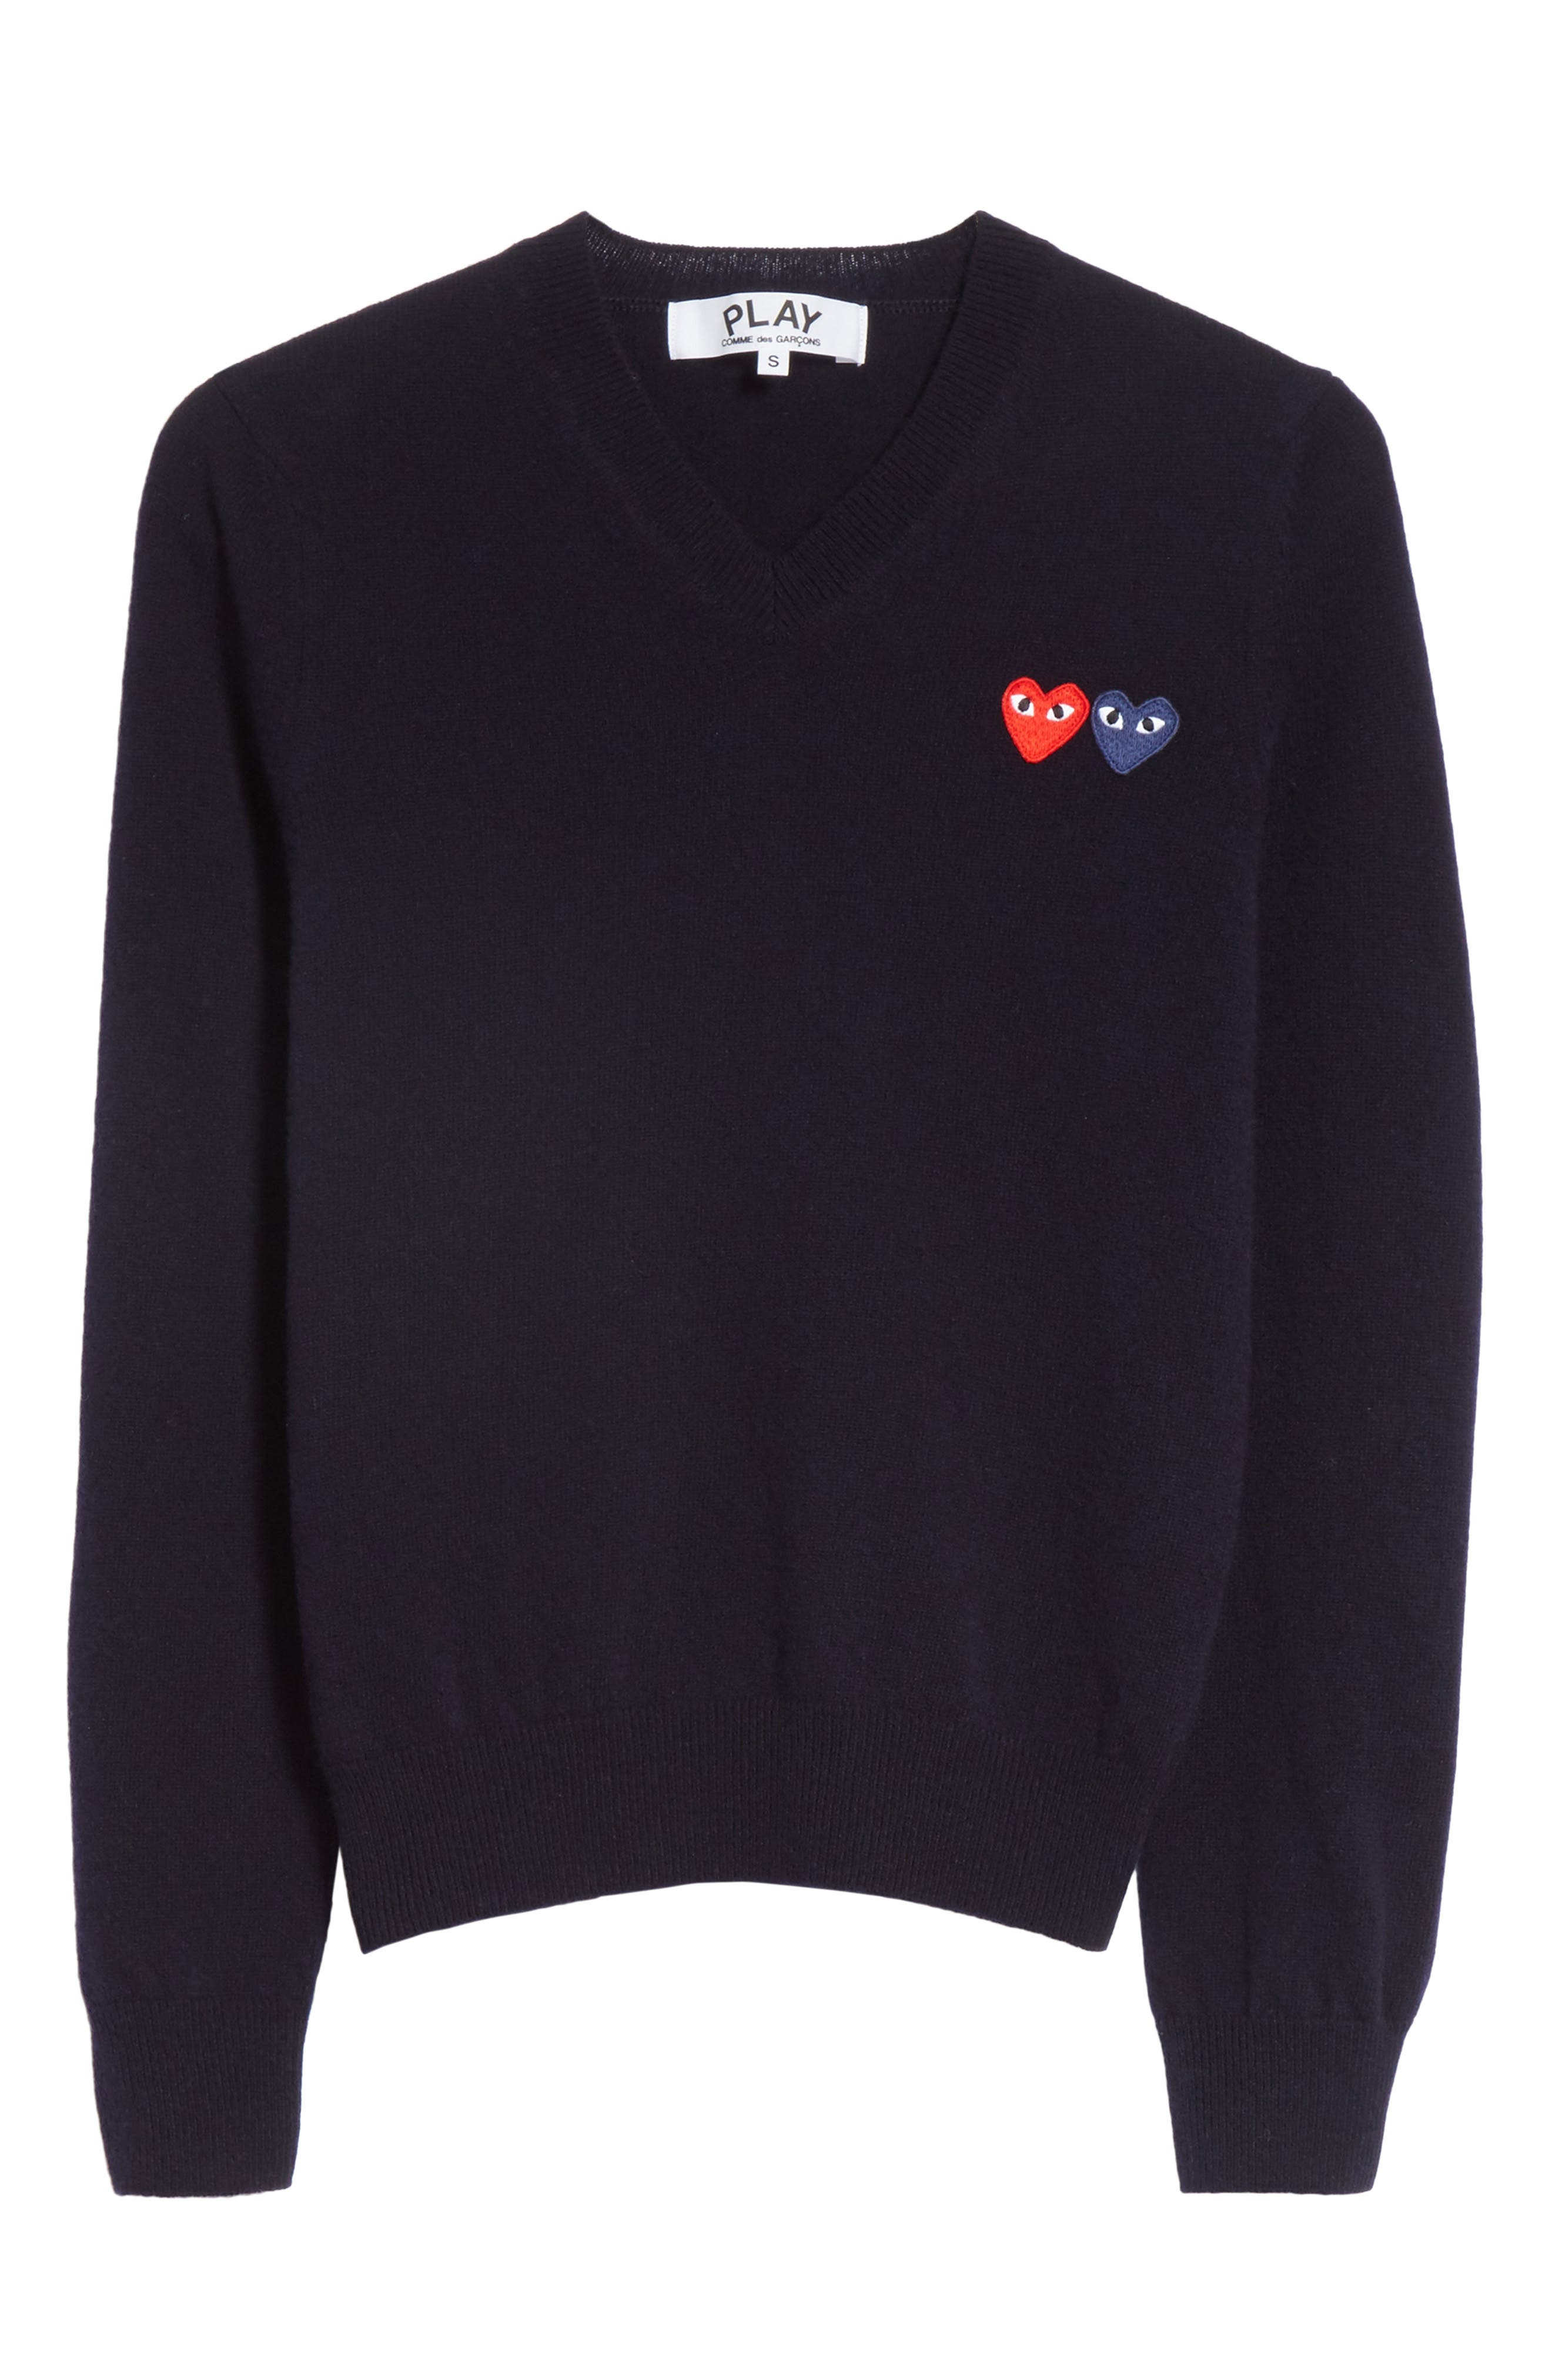 Comme des Garçons PLAY Wool Sweater,                             Alternate thumbnail 6, color,                             NAVY